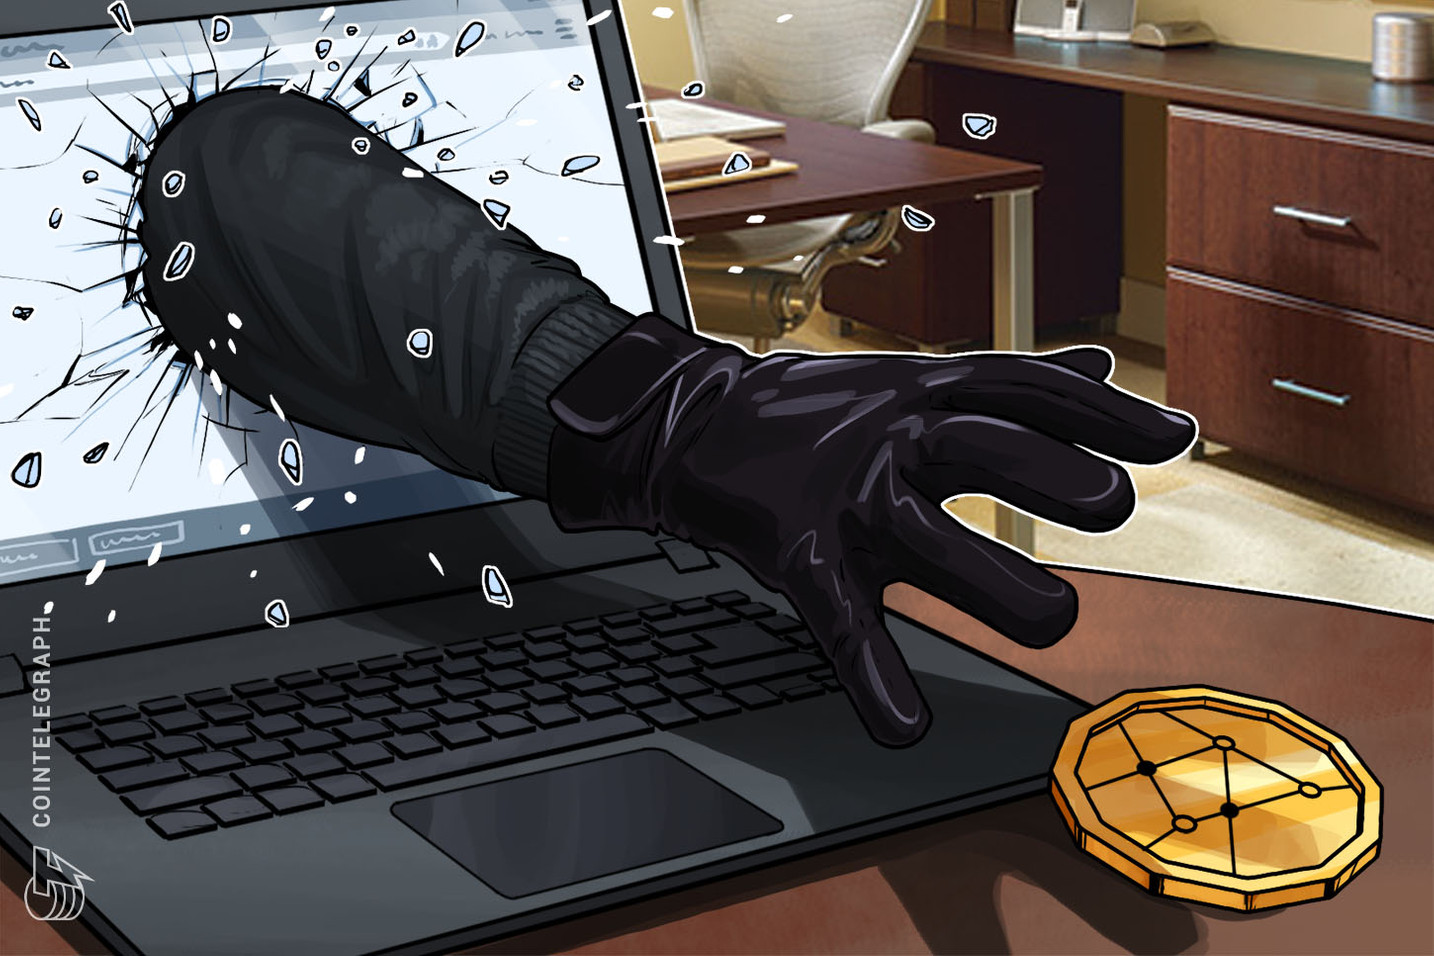 US Attorney's Office Indicts Two Suspects in EtherDelta Hack